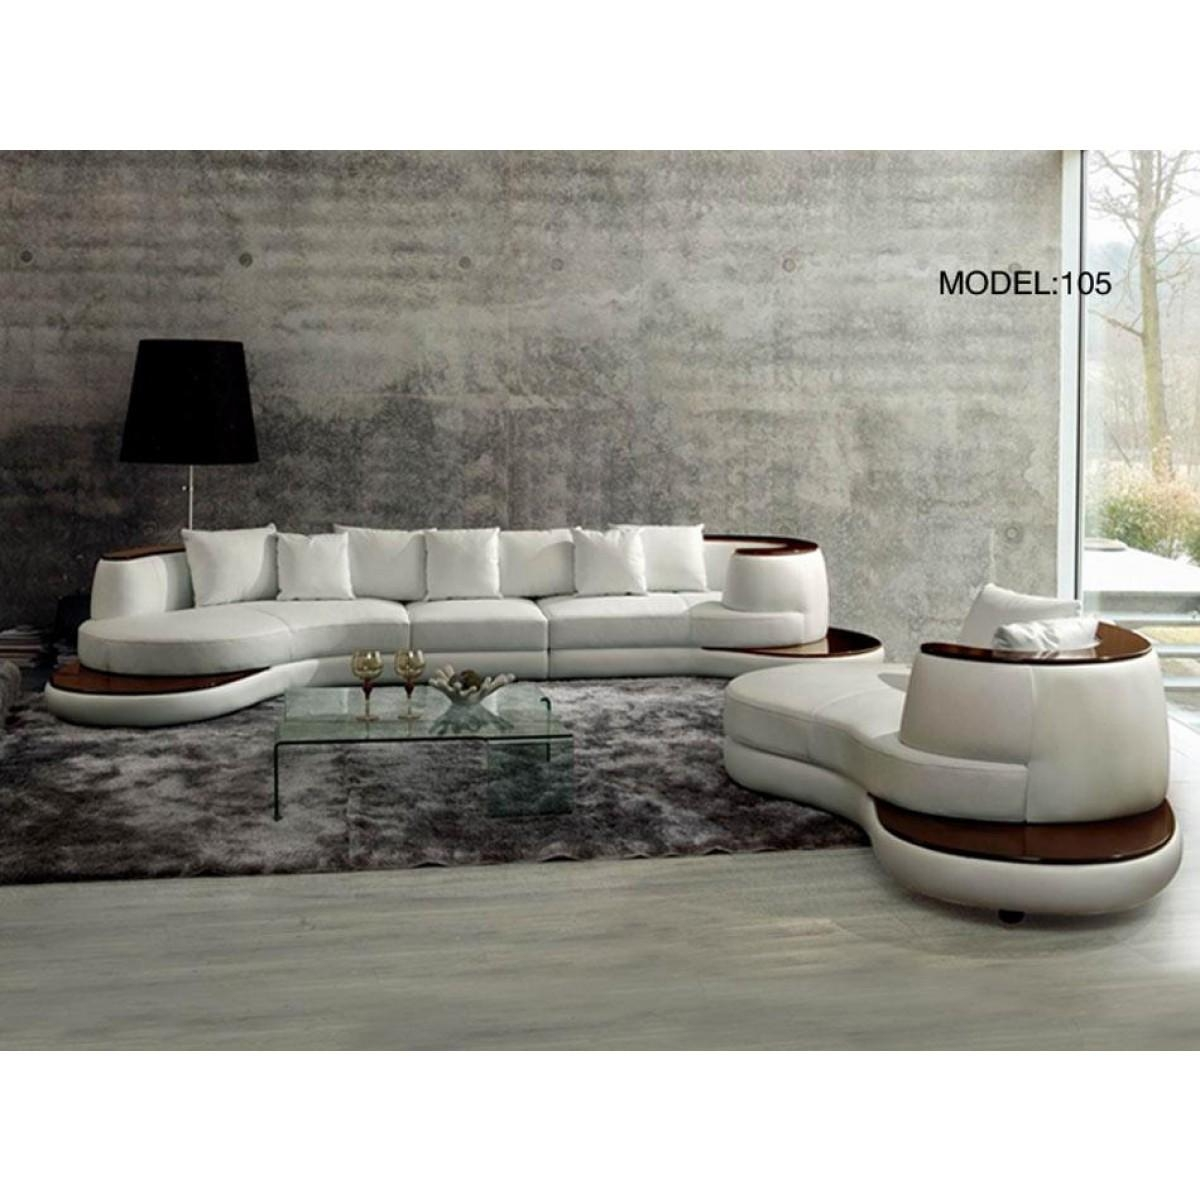 Contemporary & Luxury Furniture; Living Room, Bedroom,la Furniture Intended For Rounded Sofa (View 20 of 20)